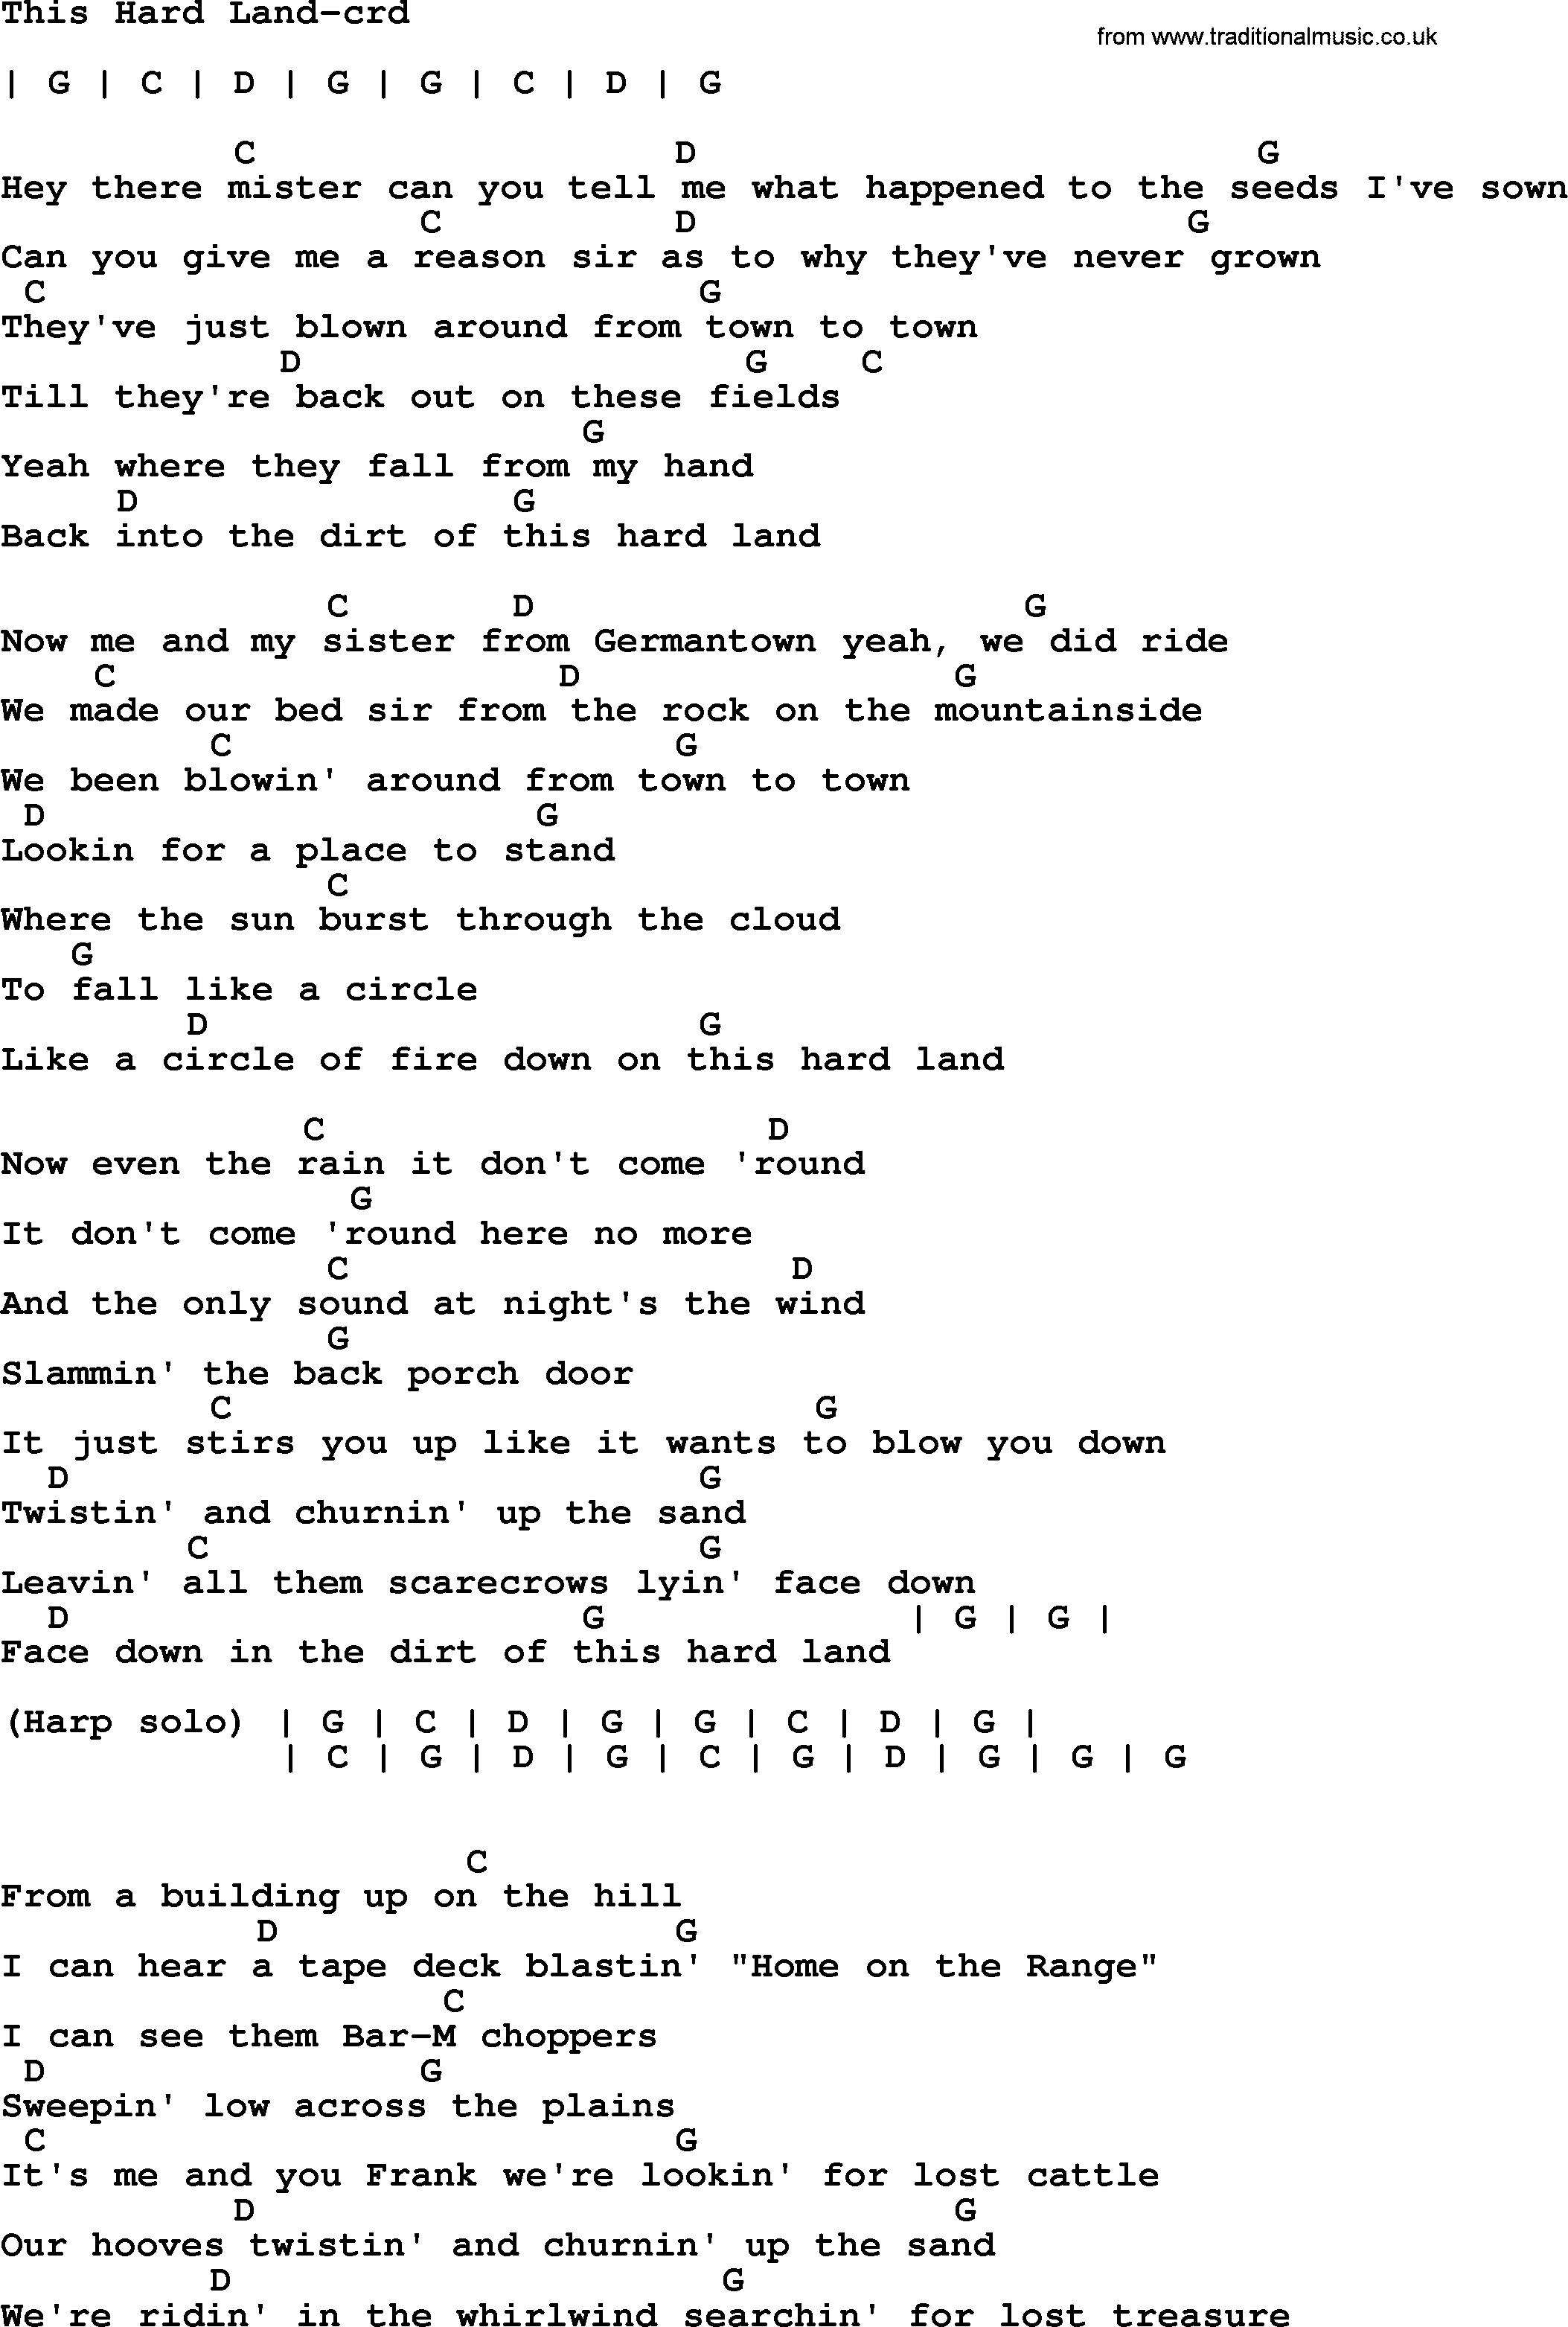 Bruce Springsteen Song This Hard Land Lyrics And Chords